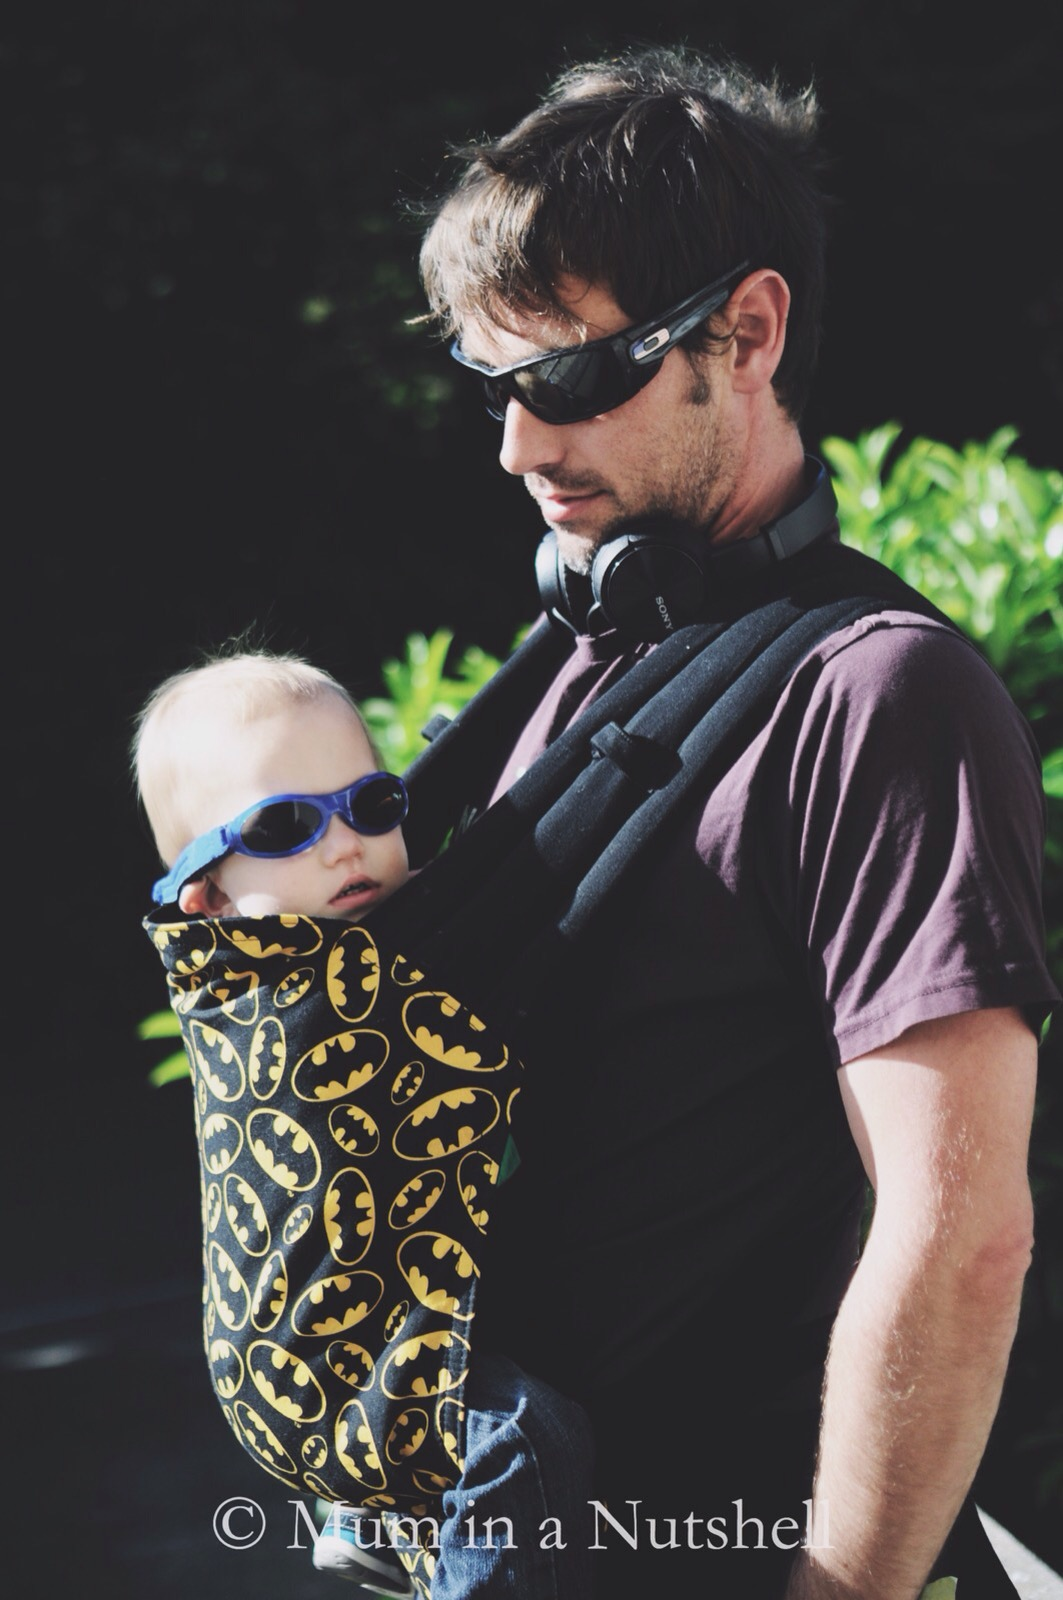 An awesome Batman baby carrier